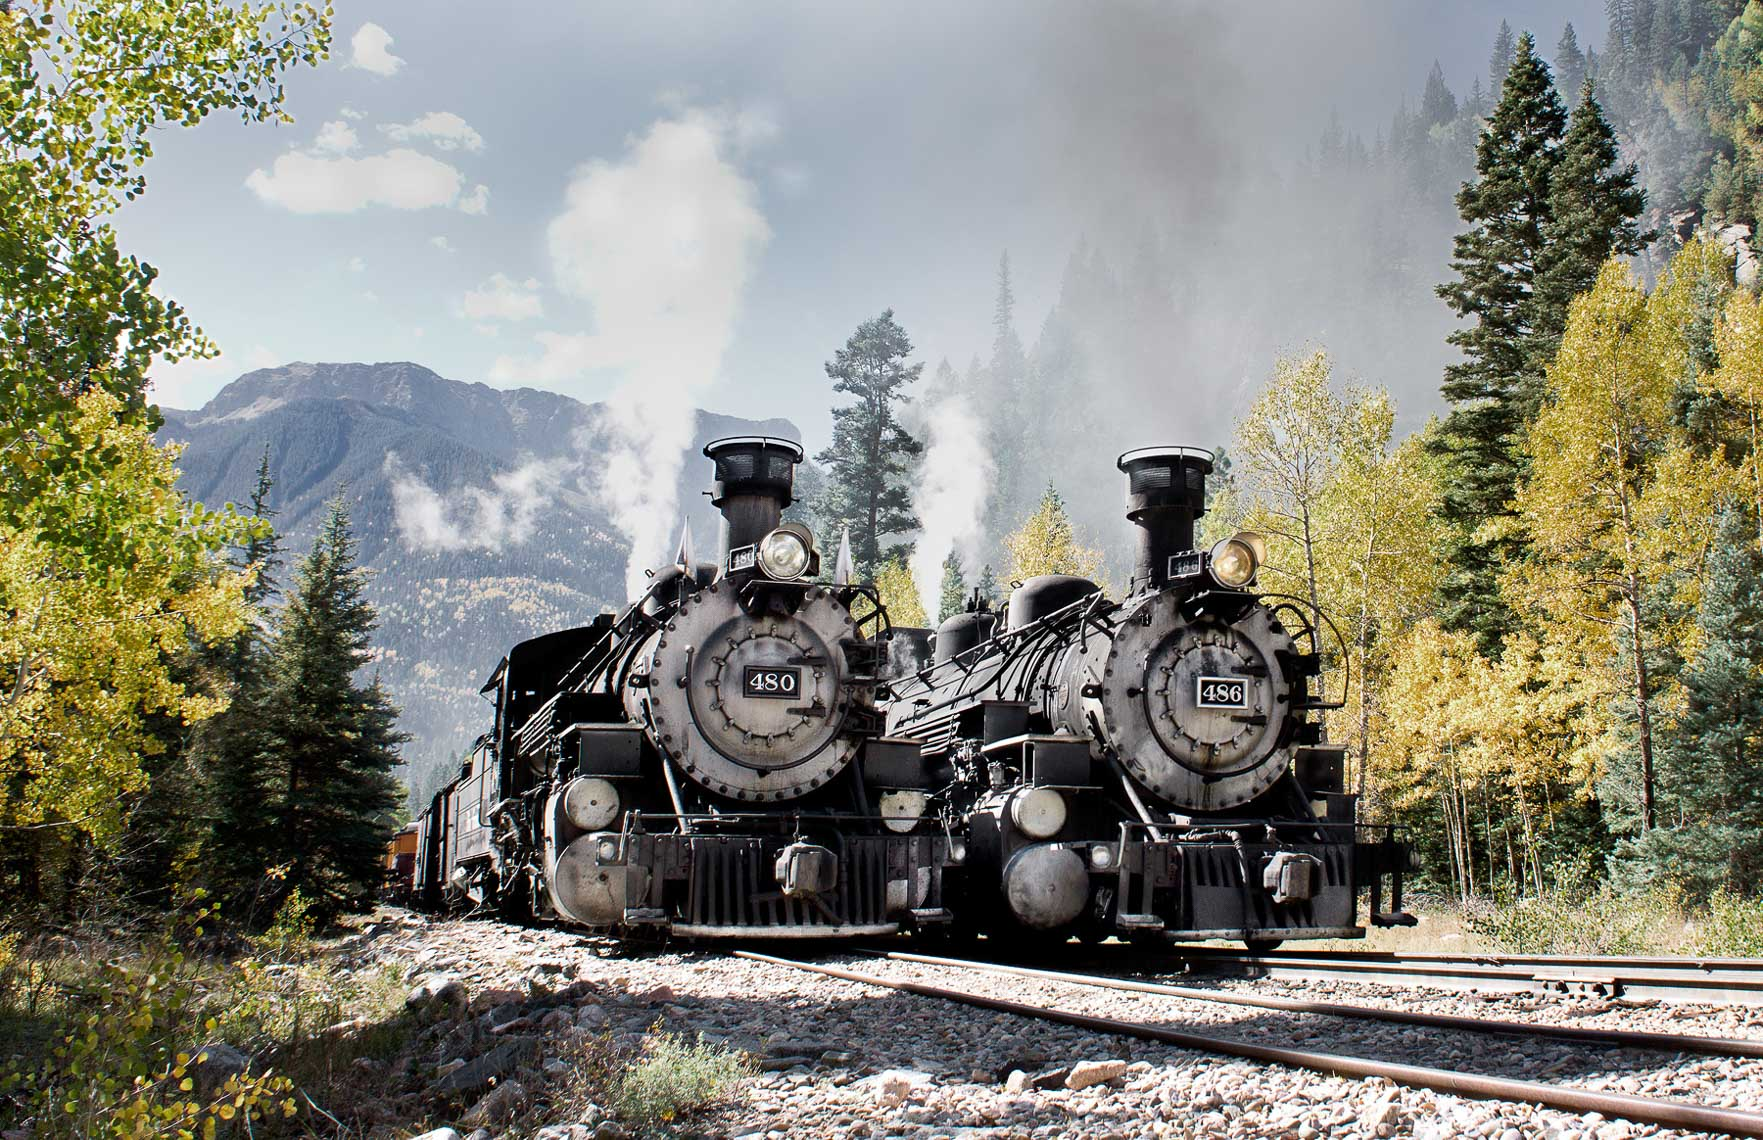 010-77DurangoandSilvertonNos480and486-